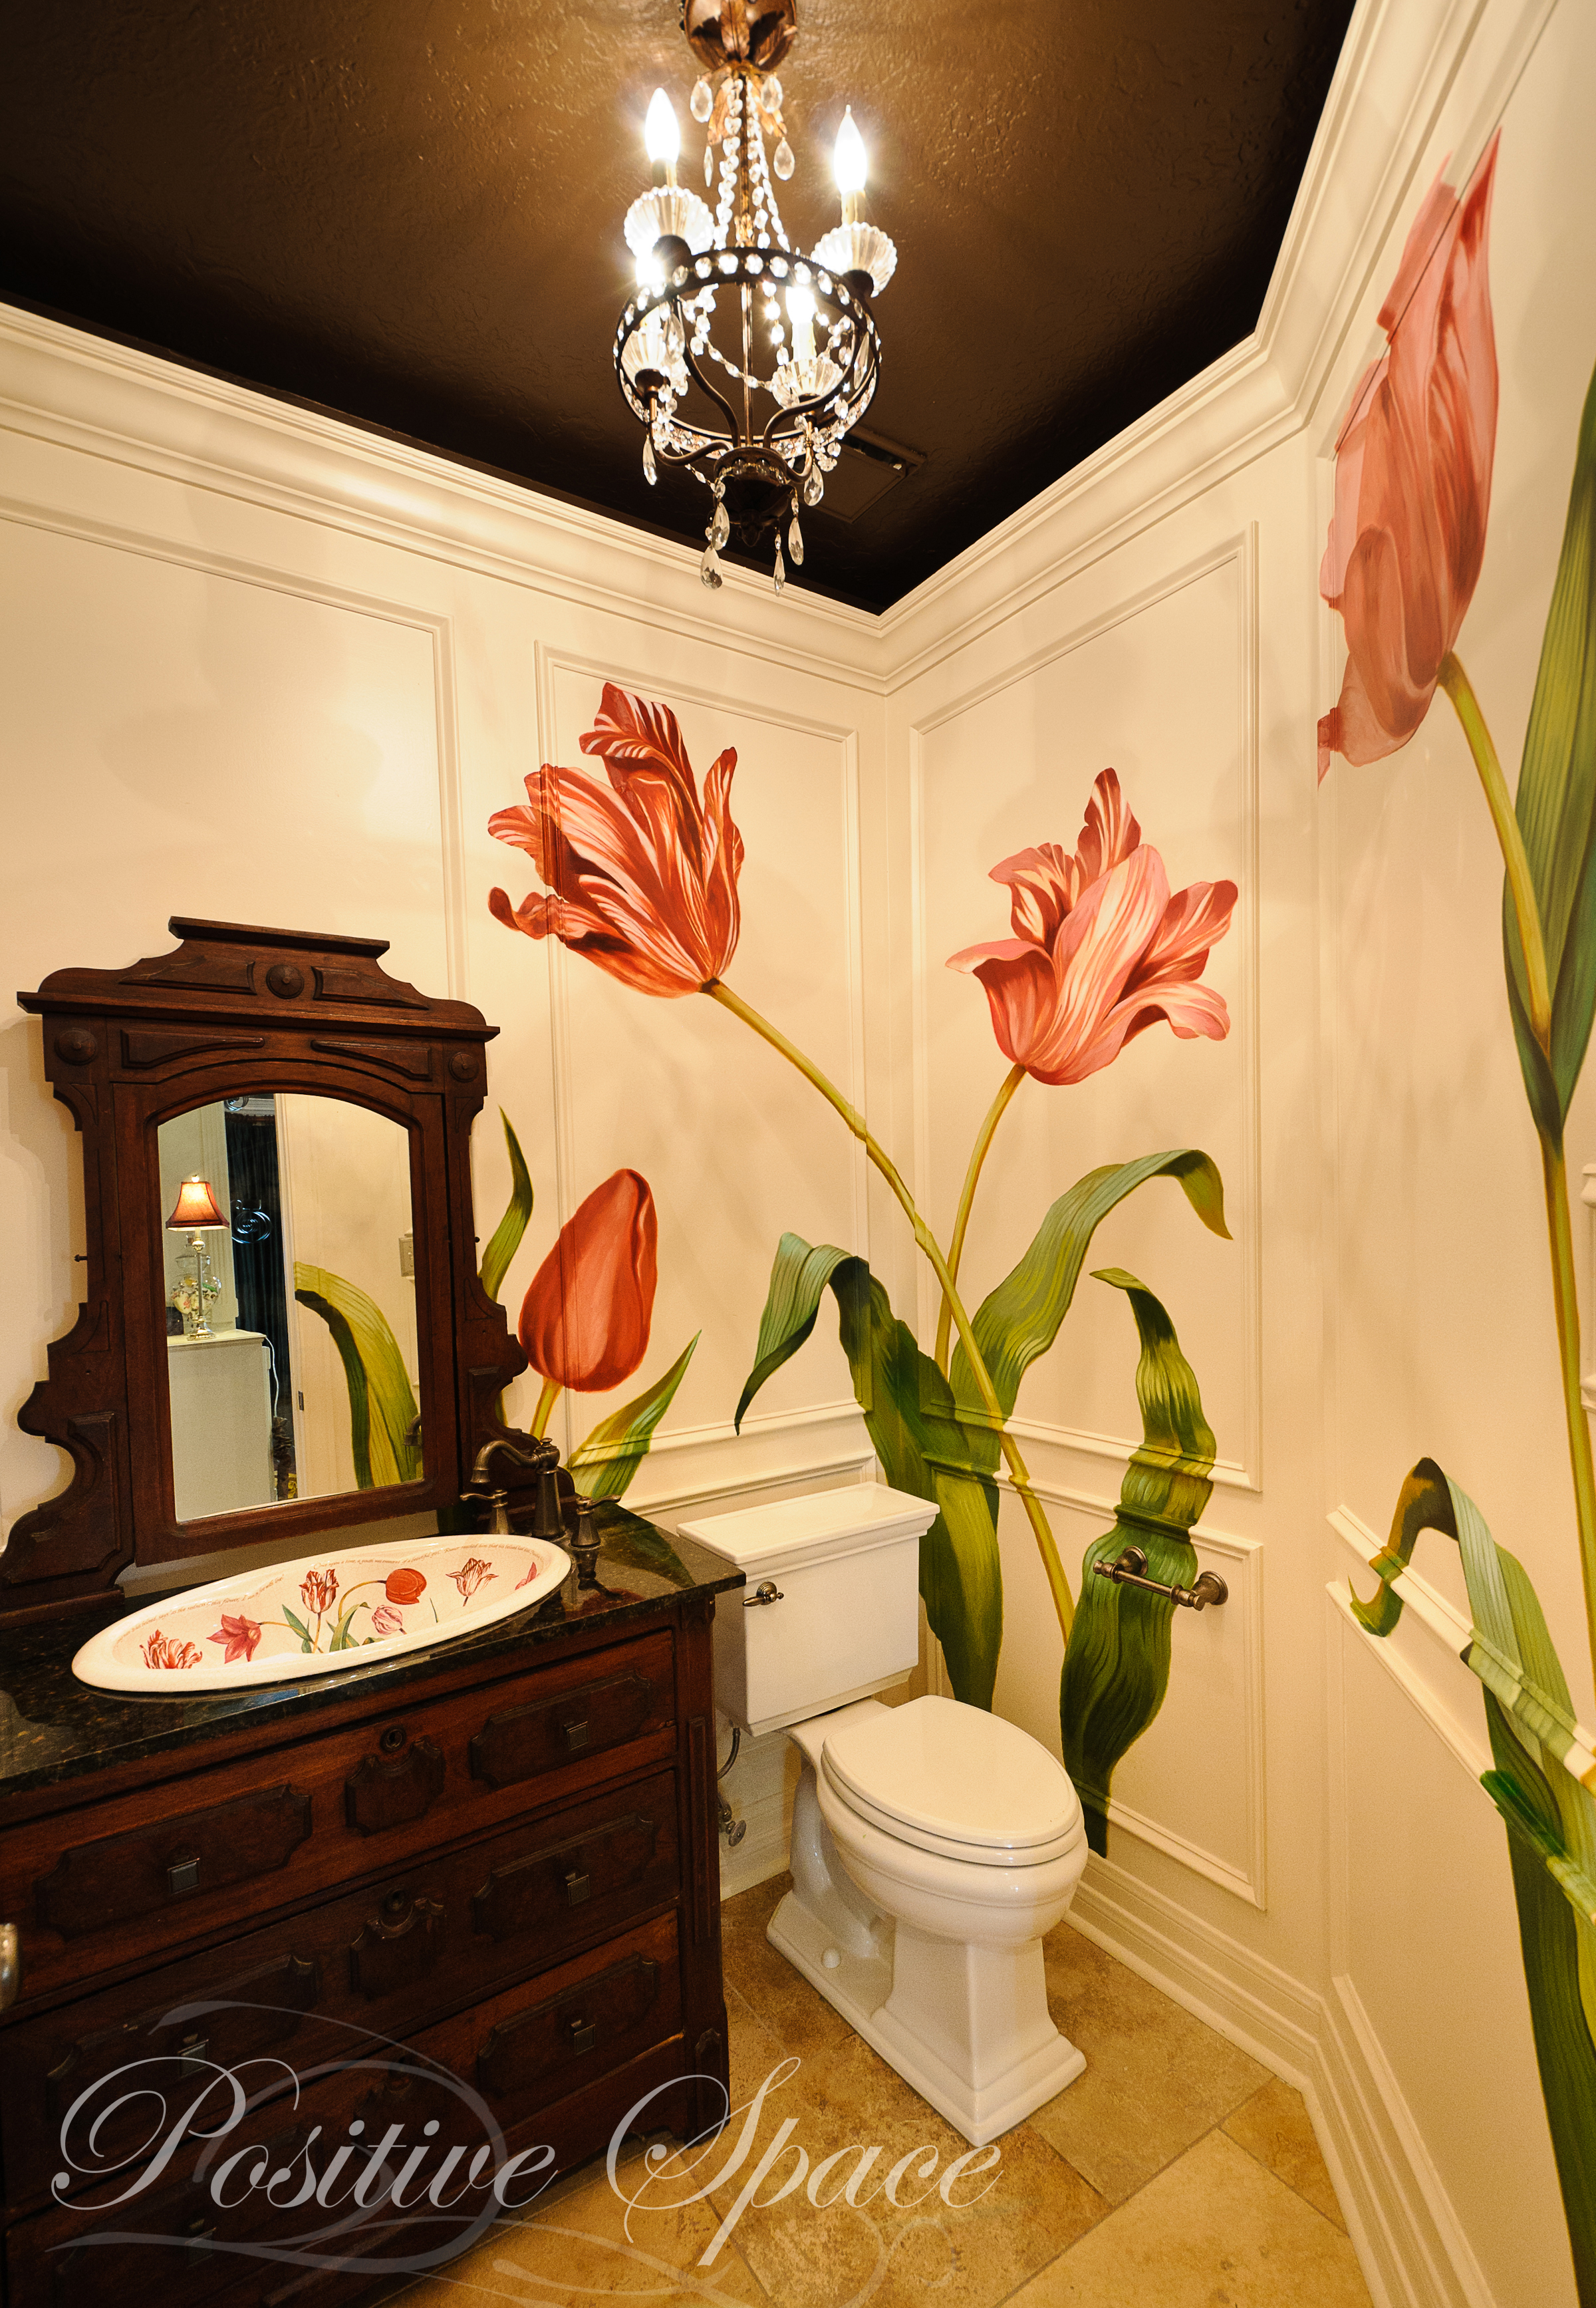 A Powder Room With a Touch of Whimsy – Positive Space